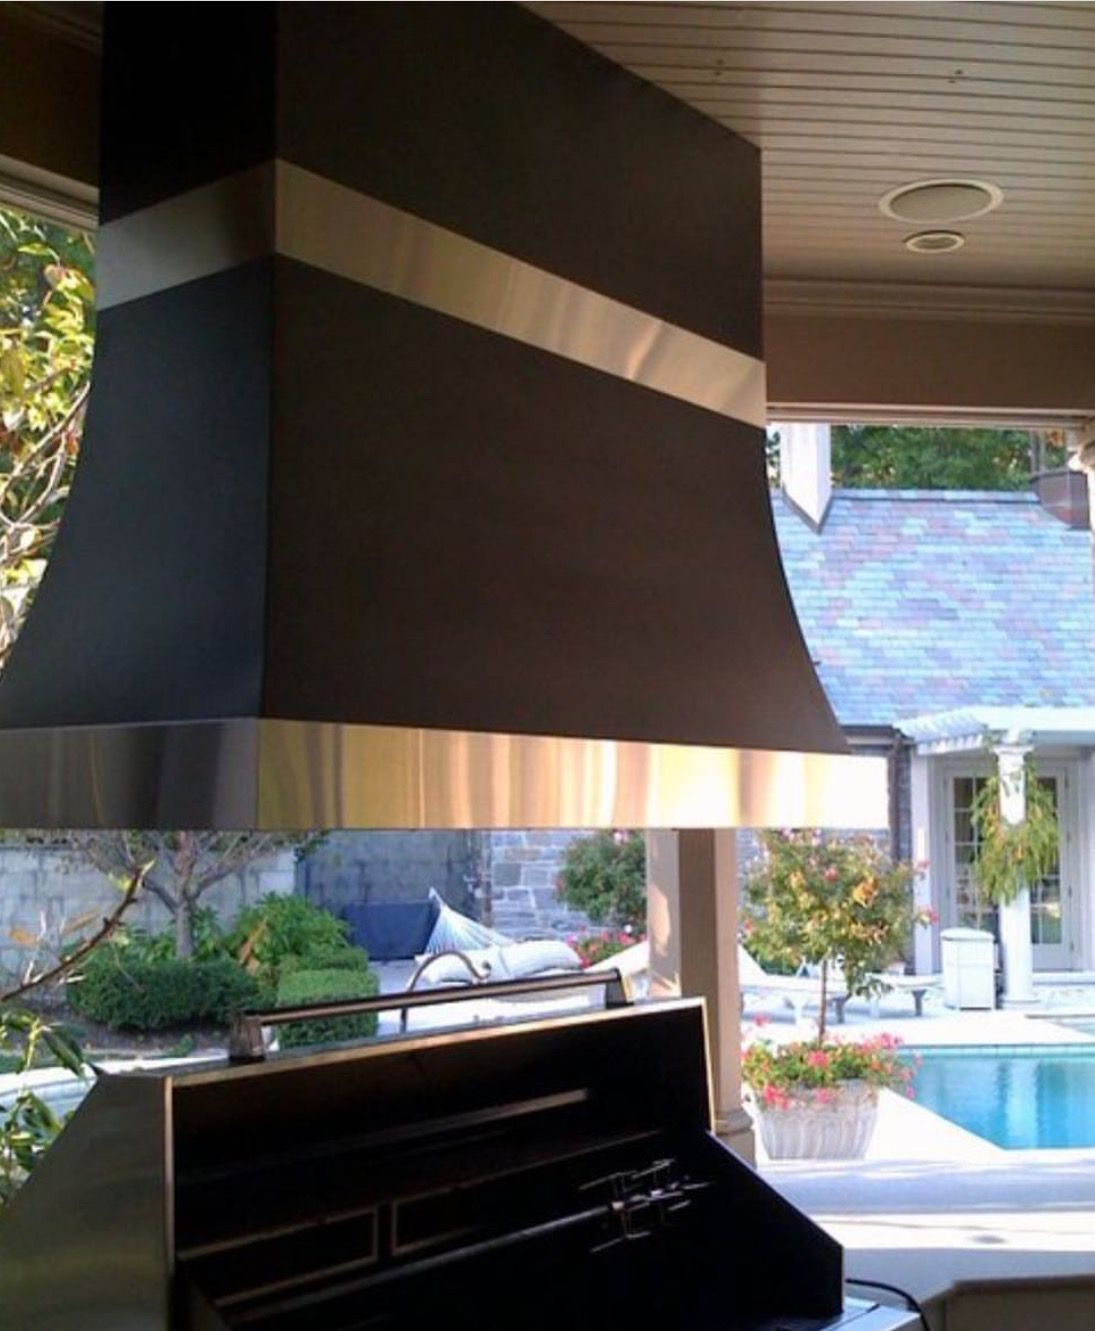 Outdoor Island Range Hood over gas grill. Very important